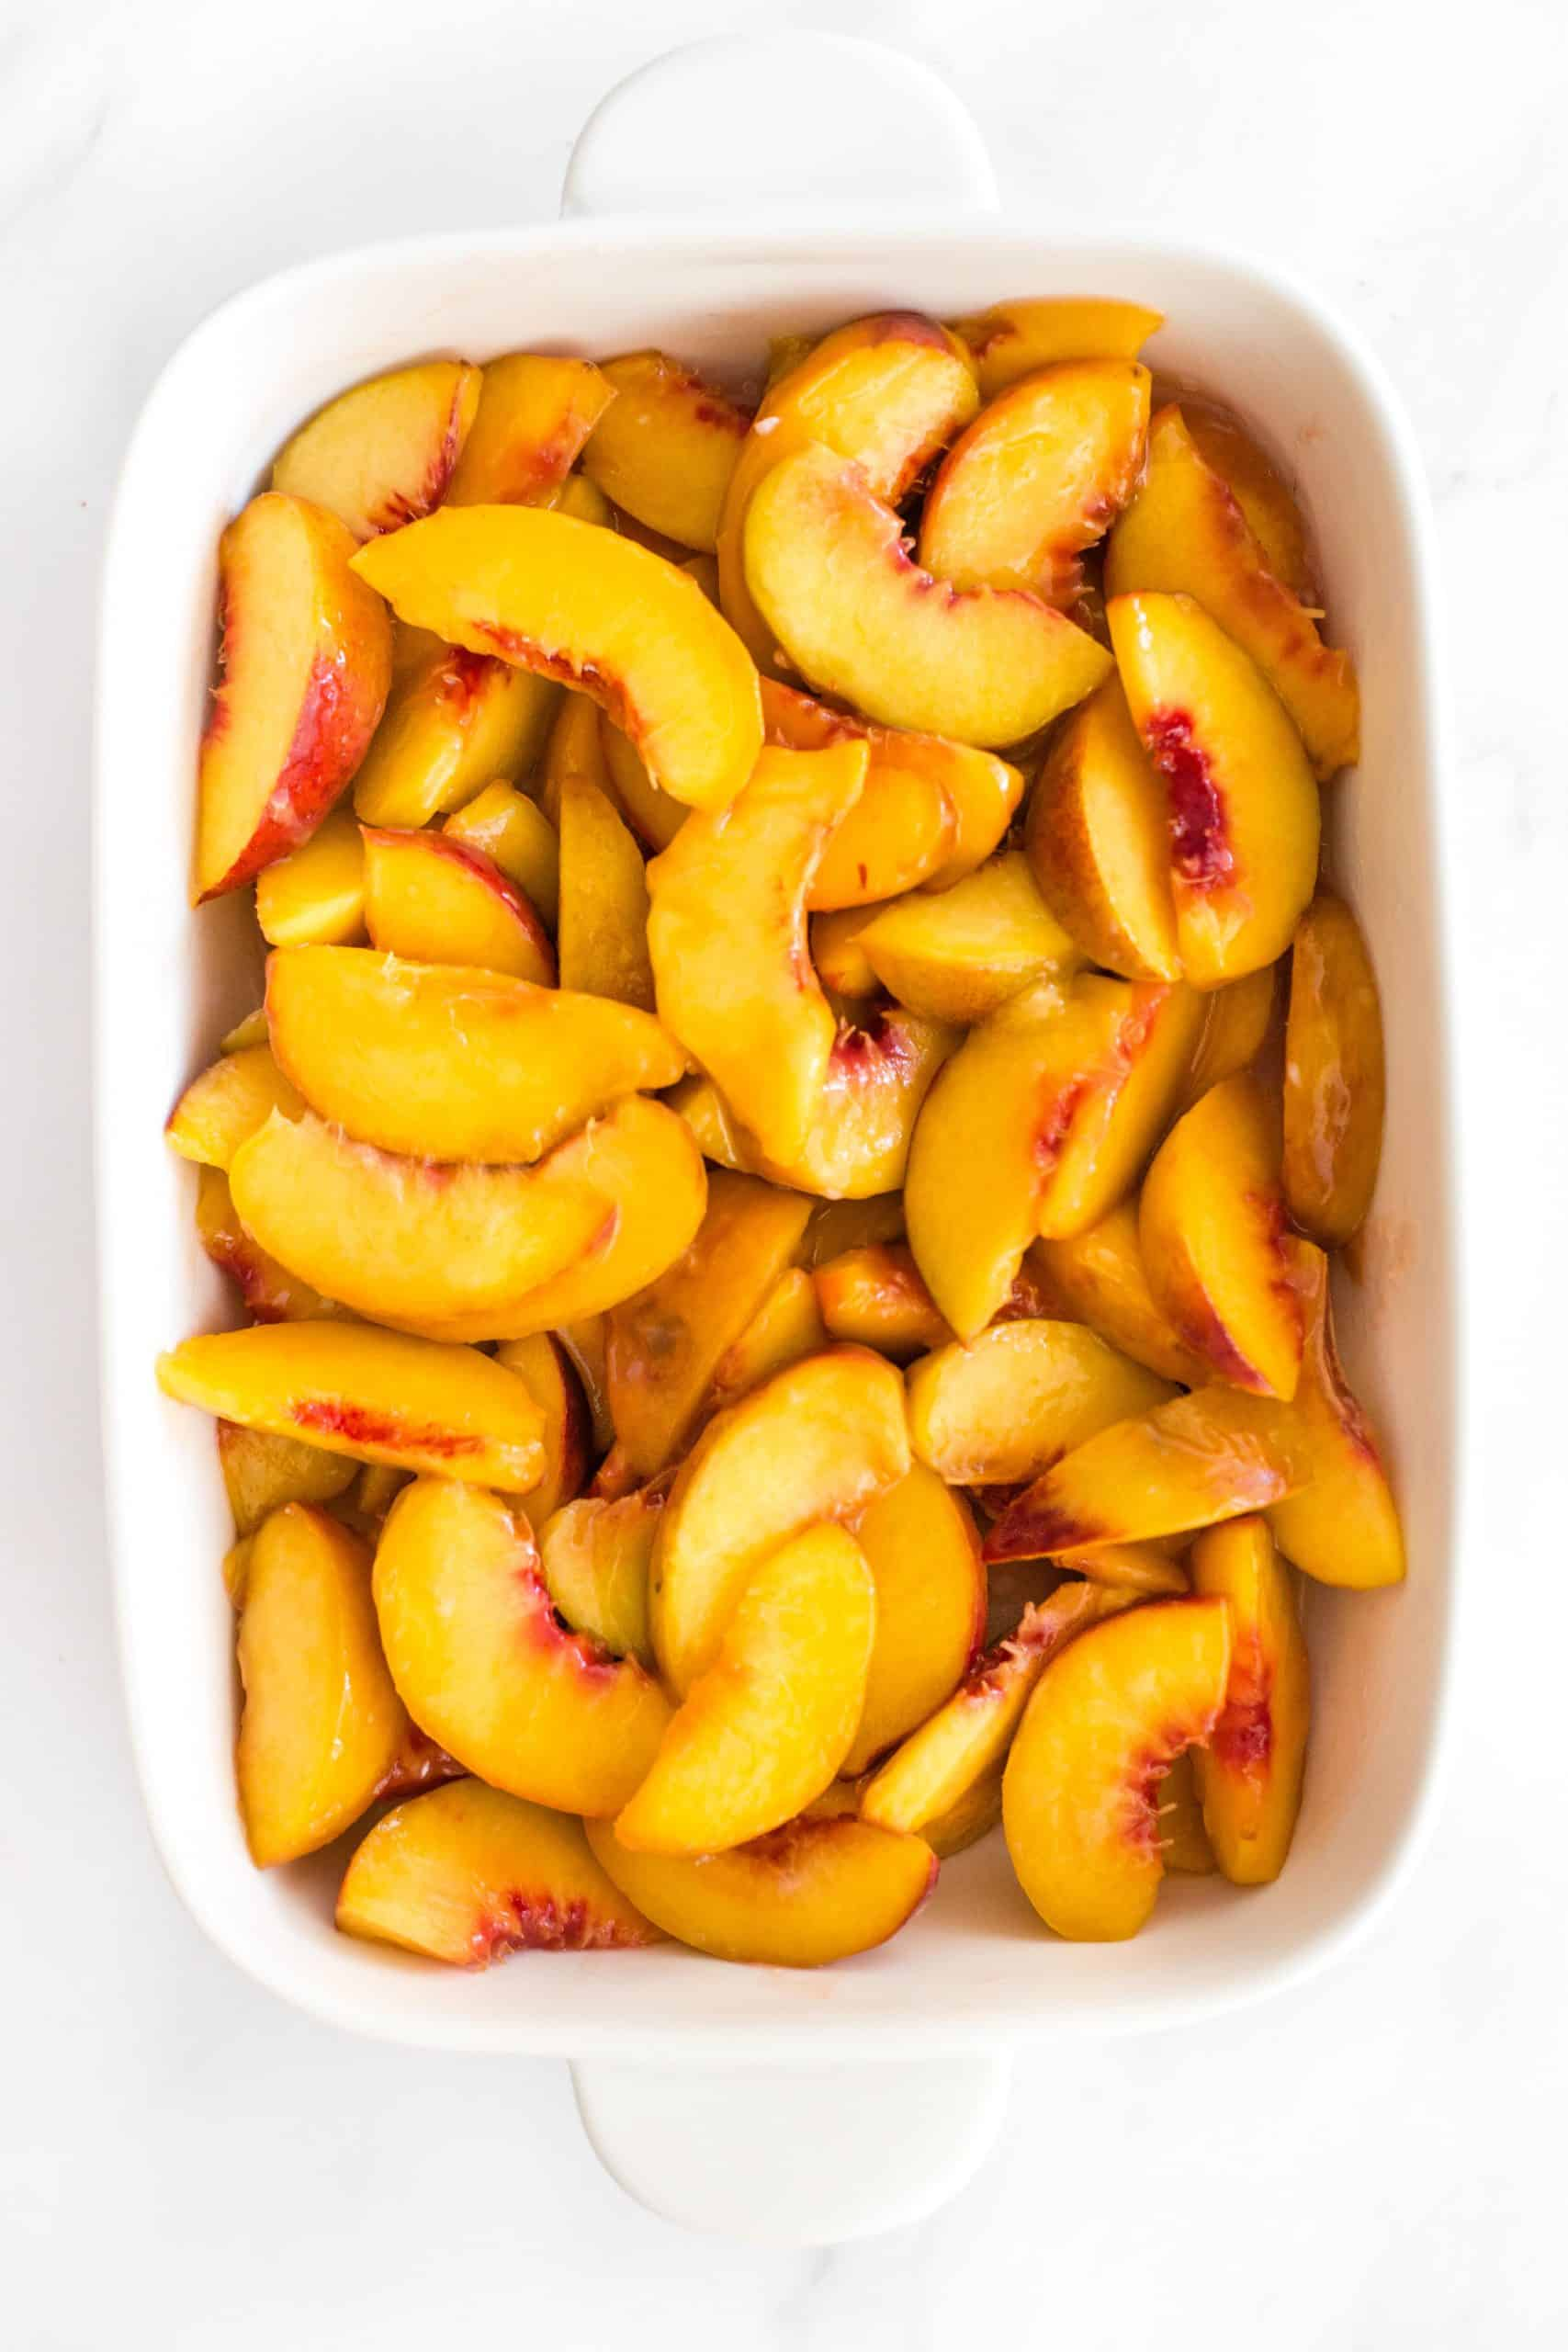 Peach slices in a baking dish.